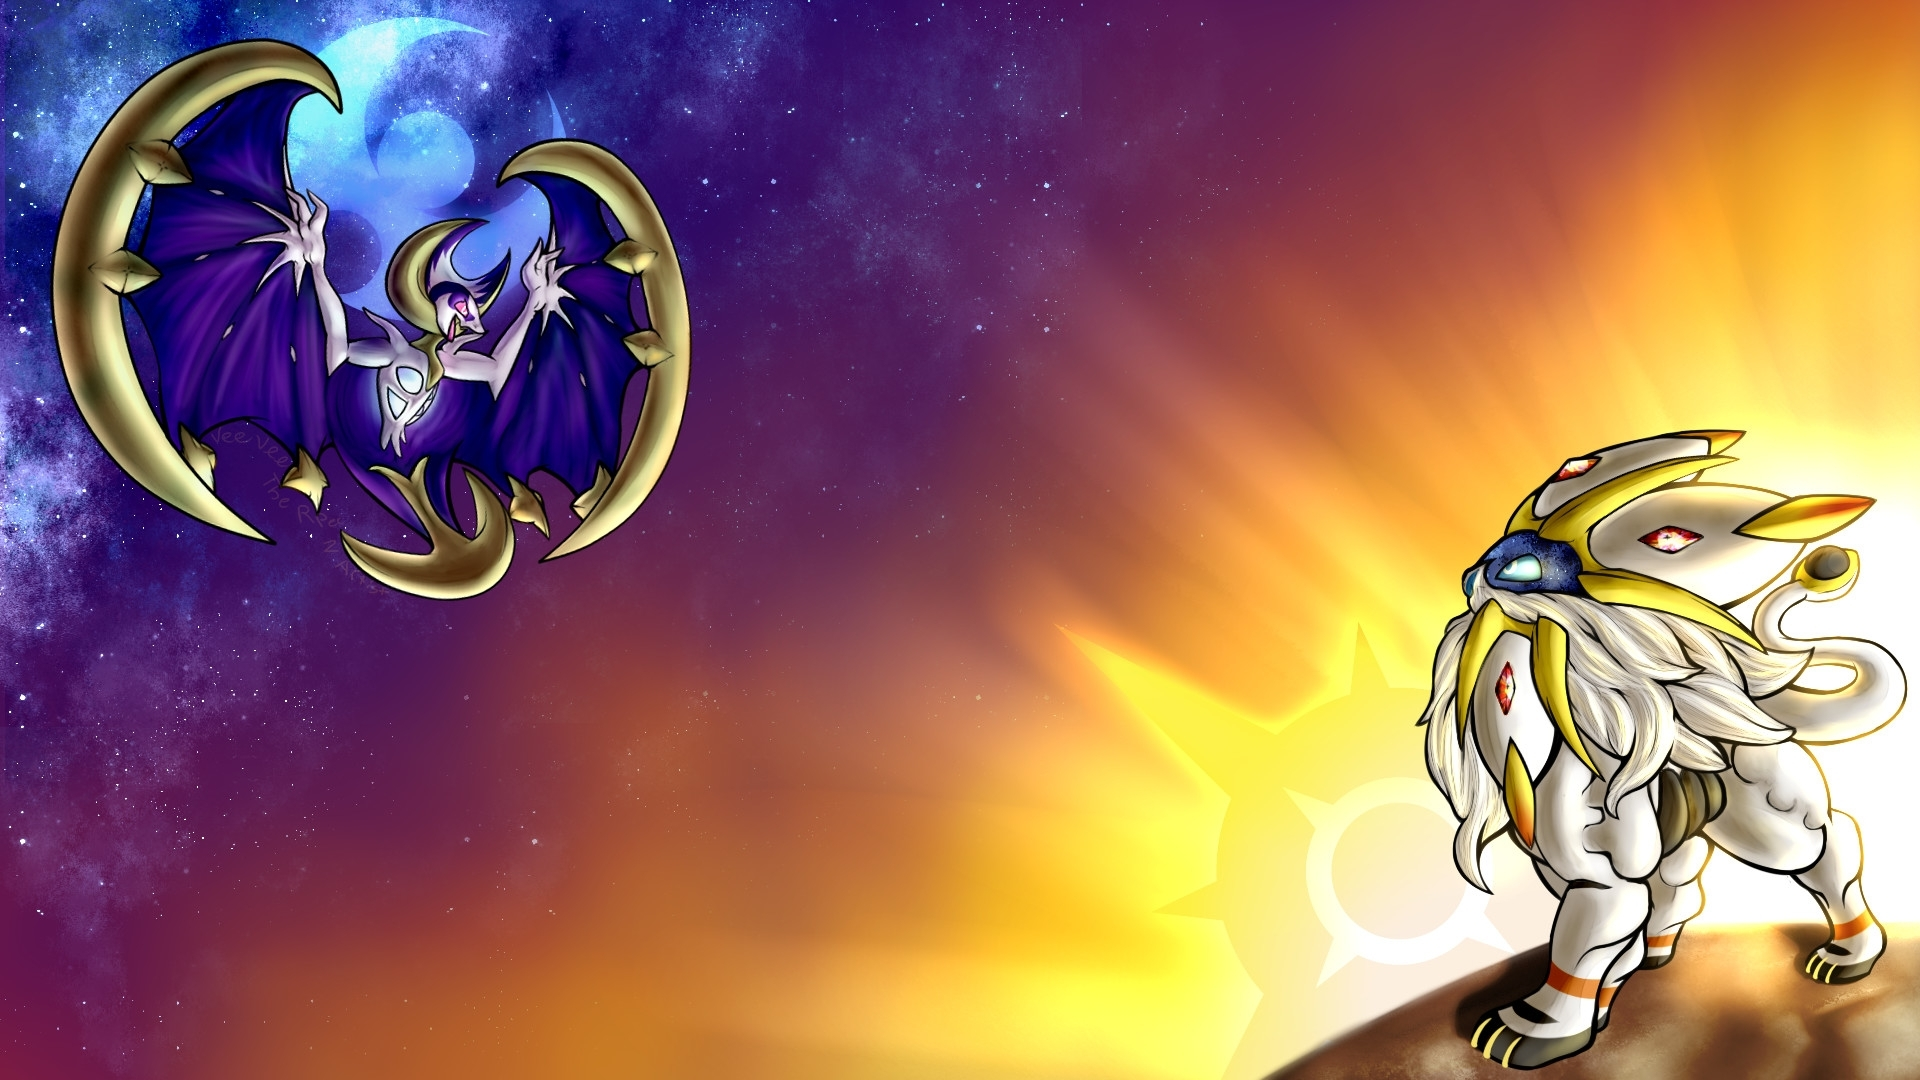 pokemon sun and moon wallpaper (79+ images)